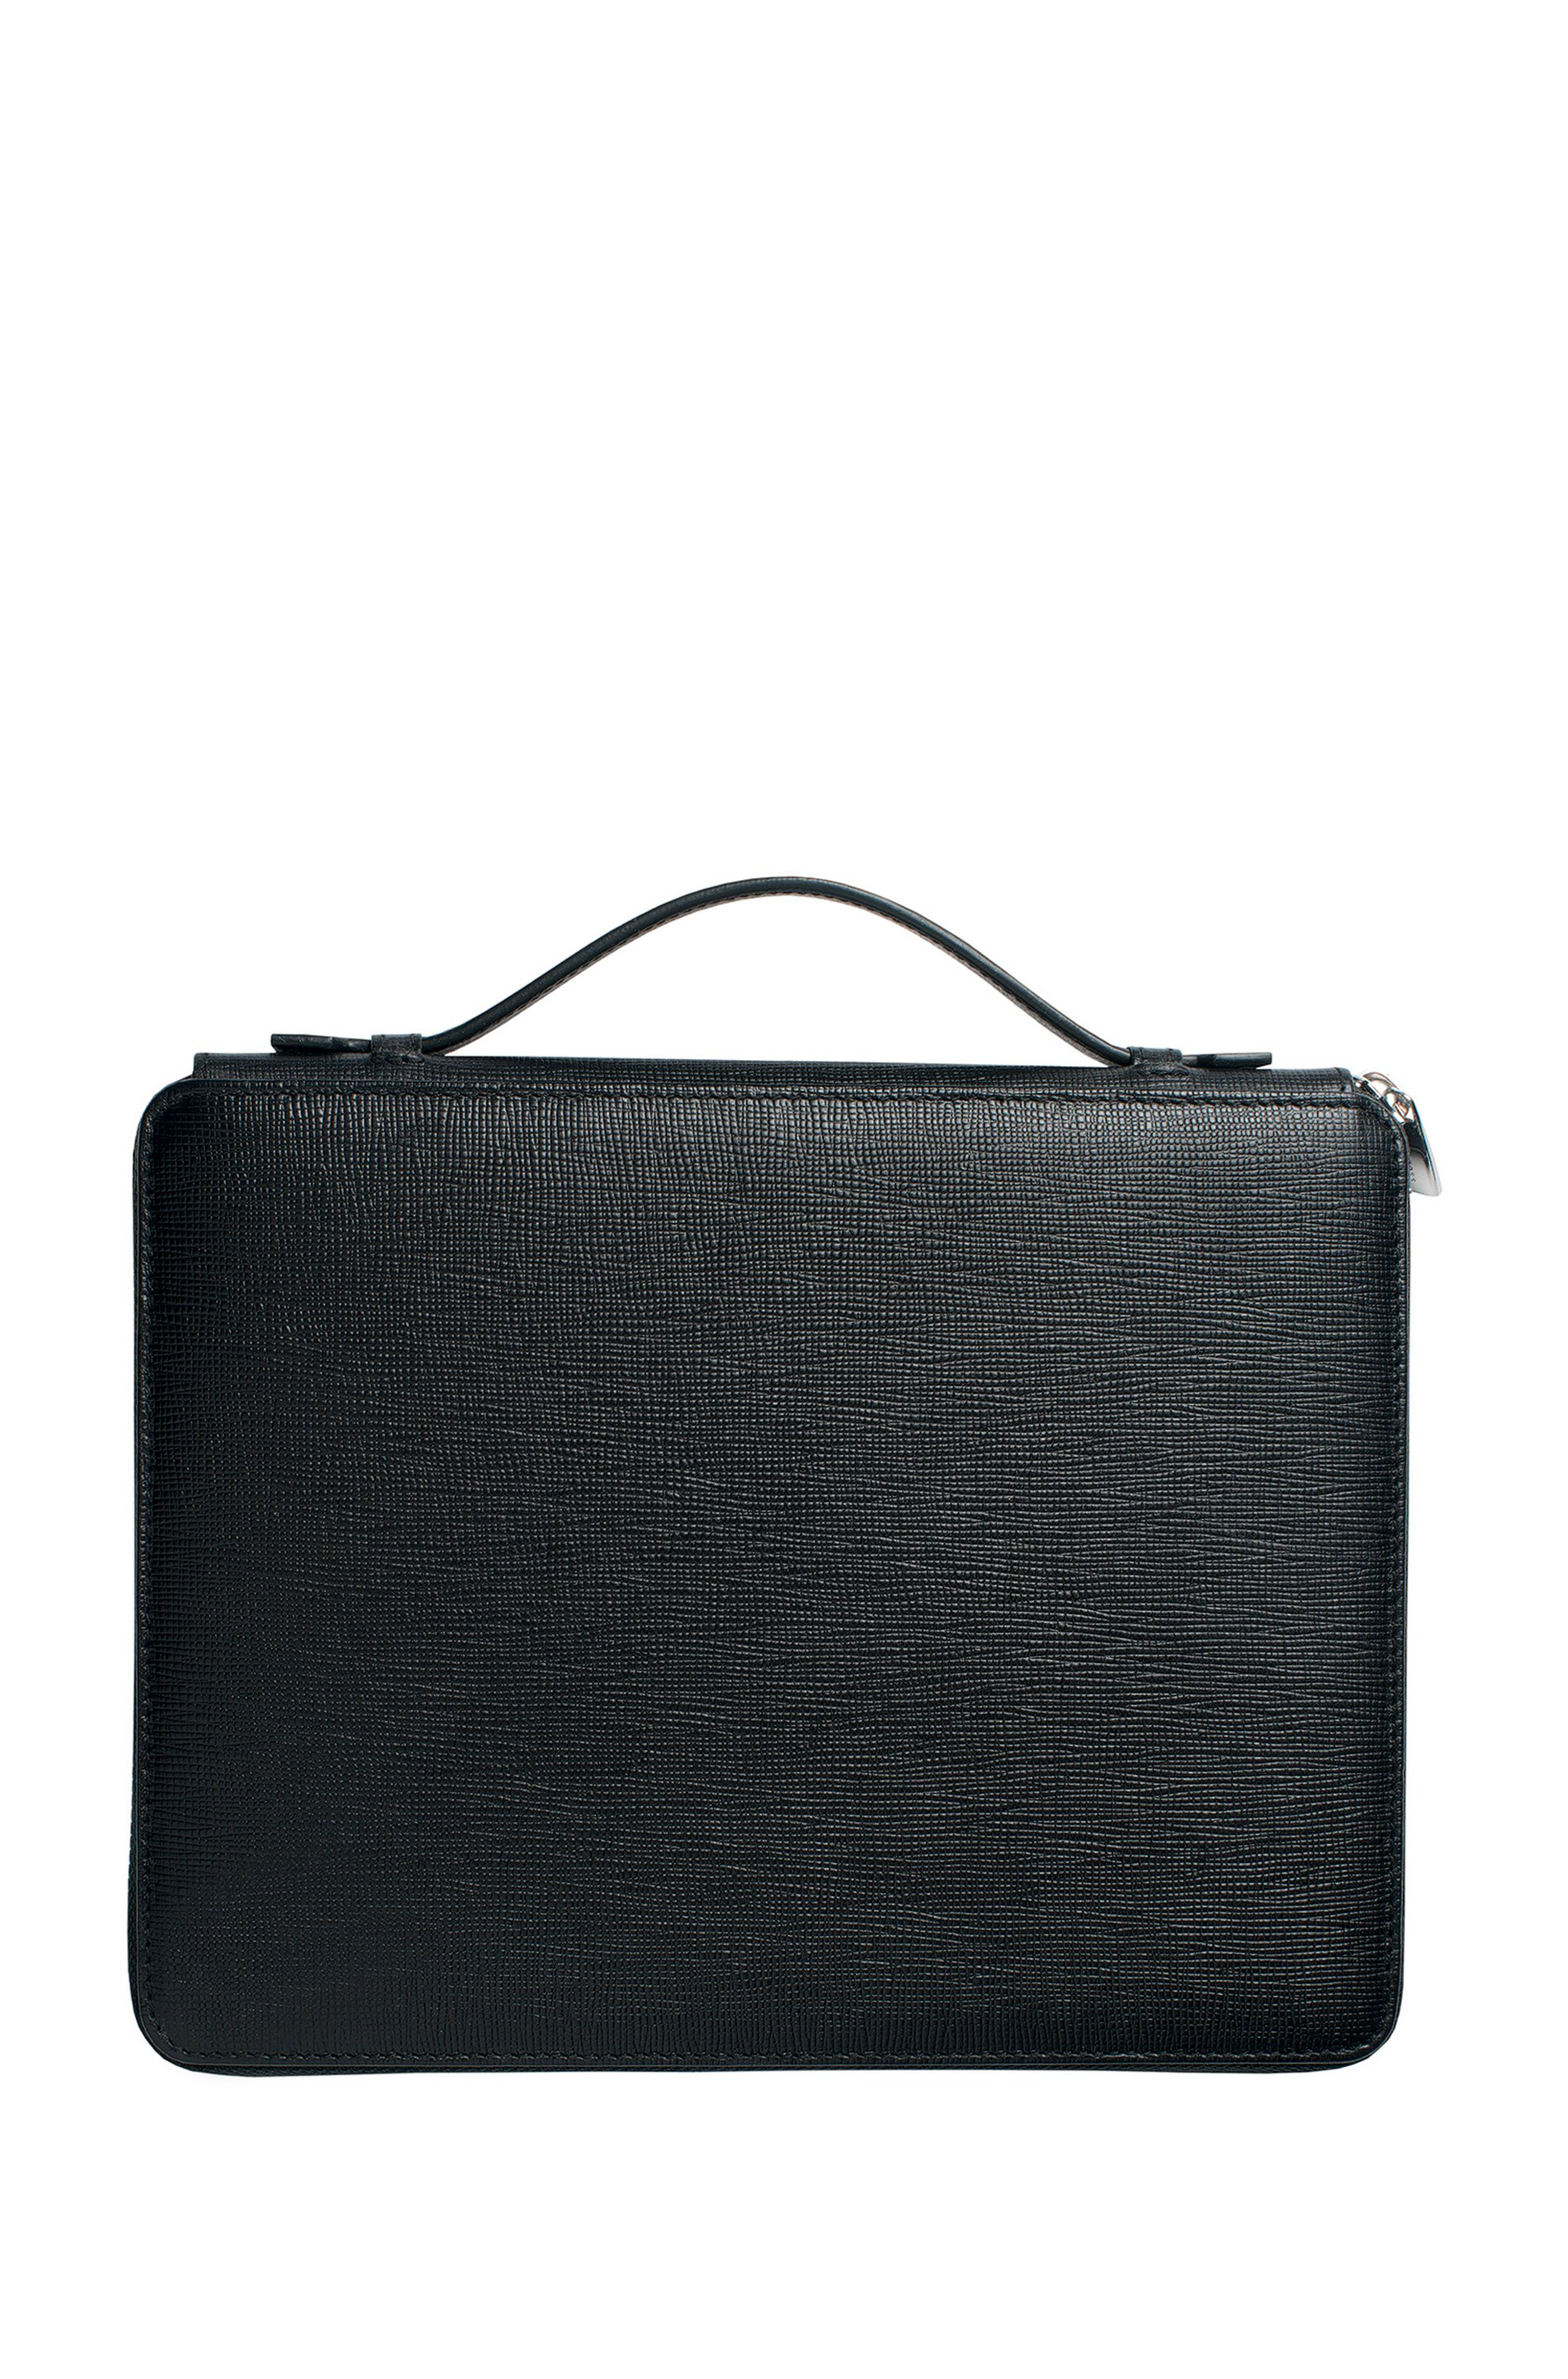 A5 conference folder in black textured leather